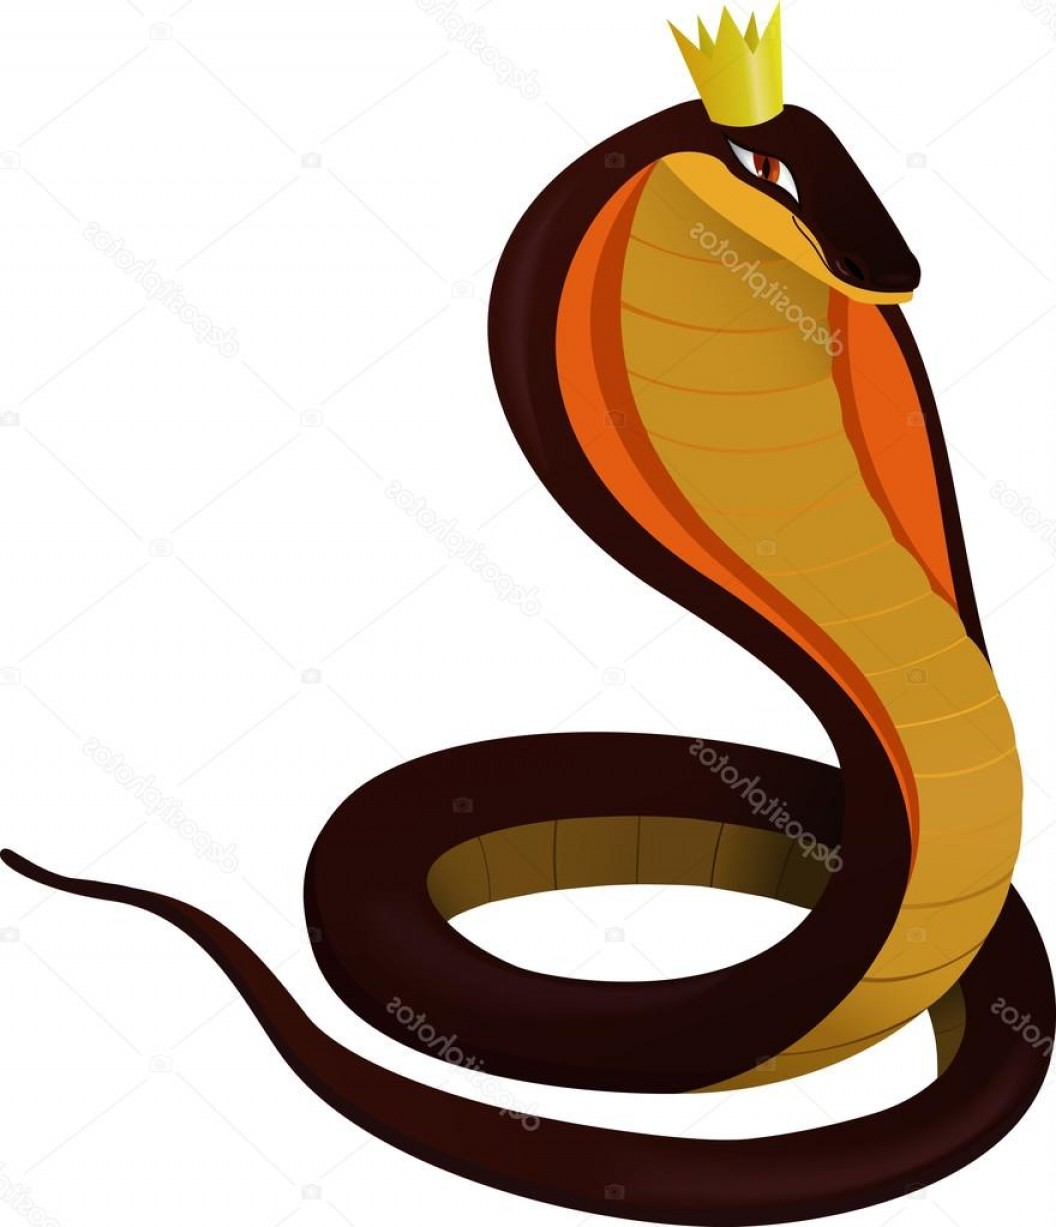 Snake Crown Vector: Stock Illustration The Serpent With The Crown